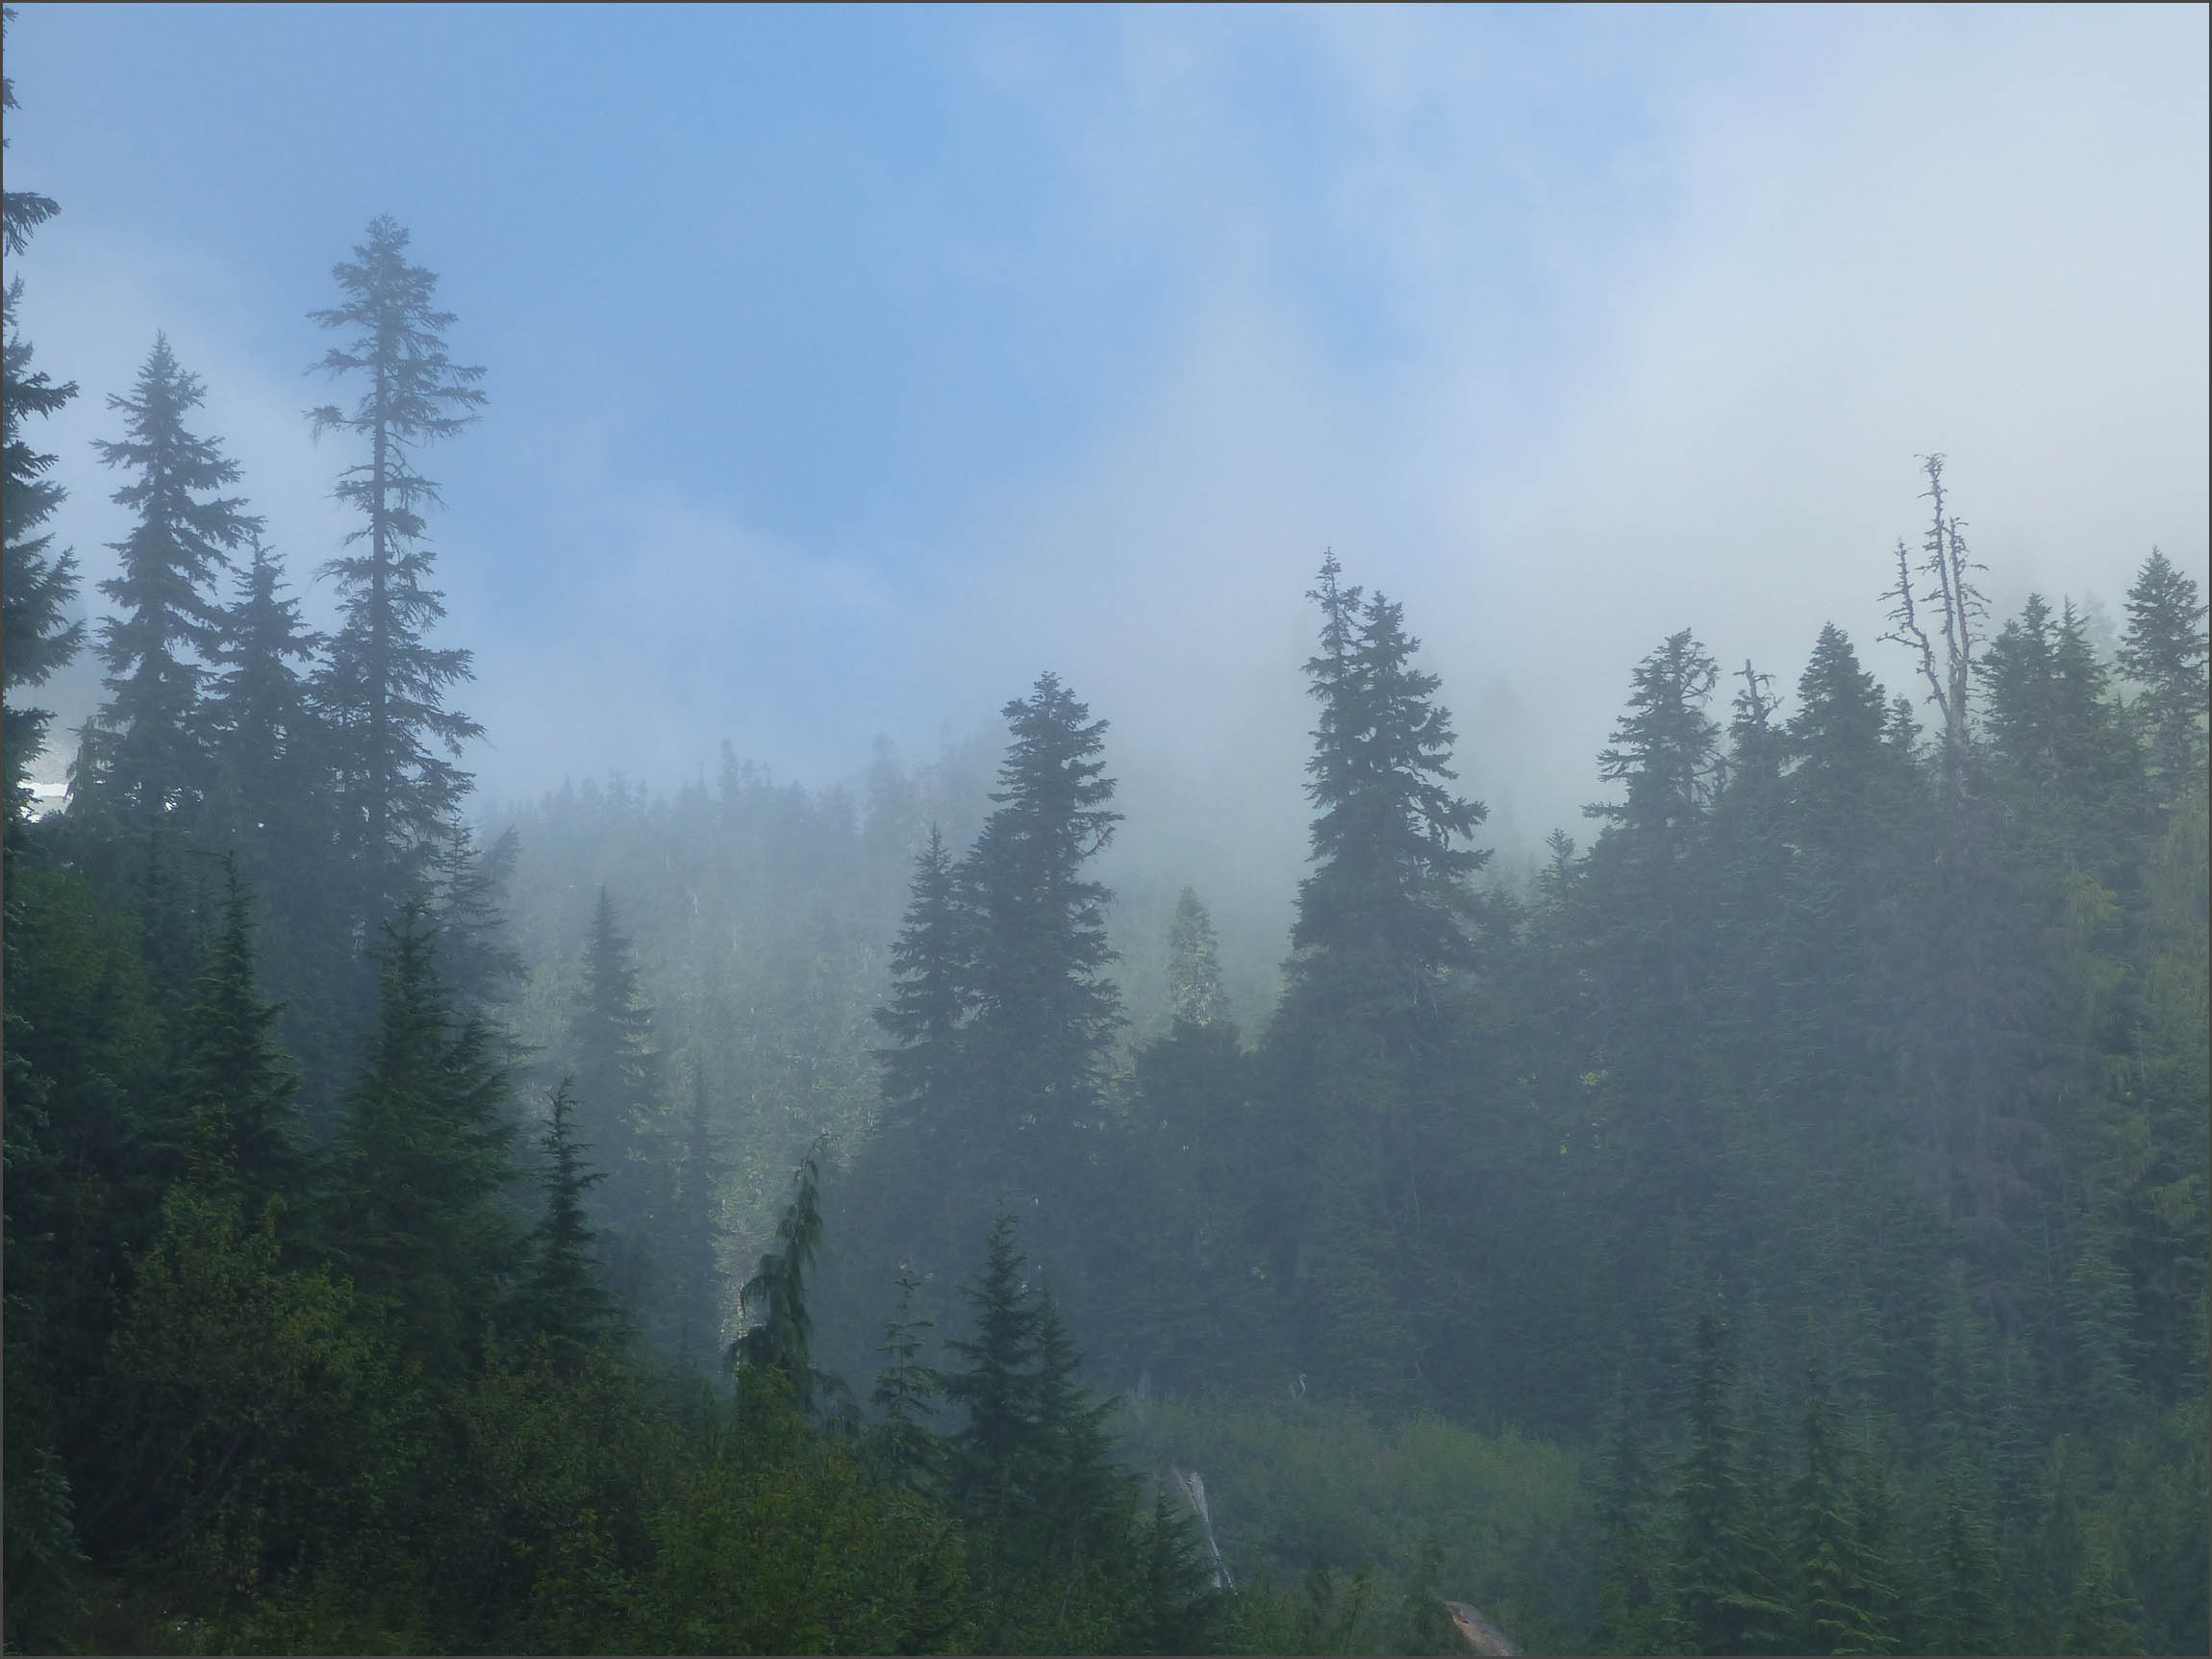 Conifers and misty blue sky